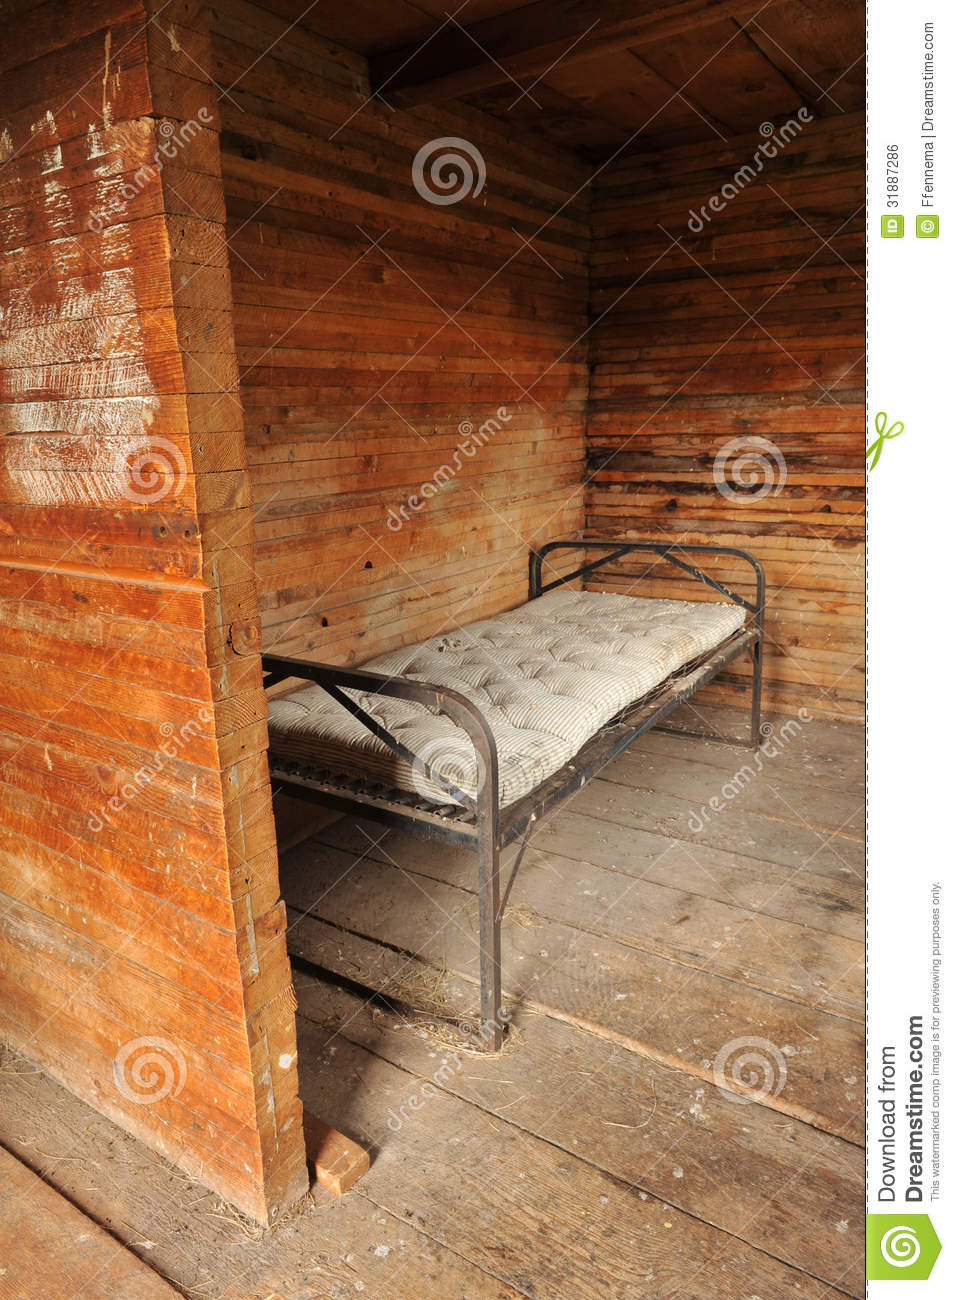 Room With A Metal Bed Frame And Old Mattress Stock Photo